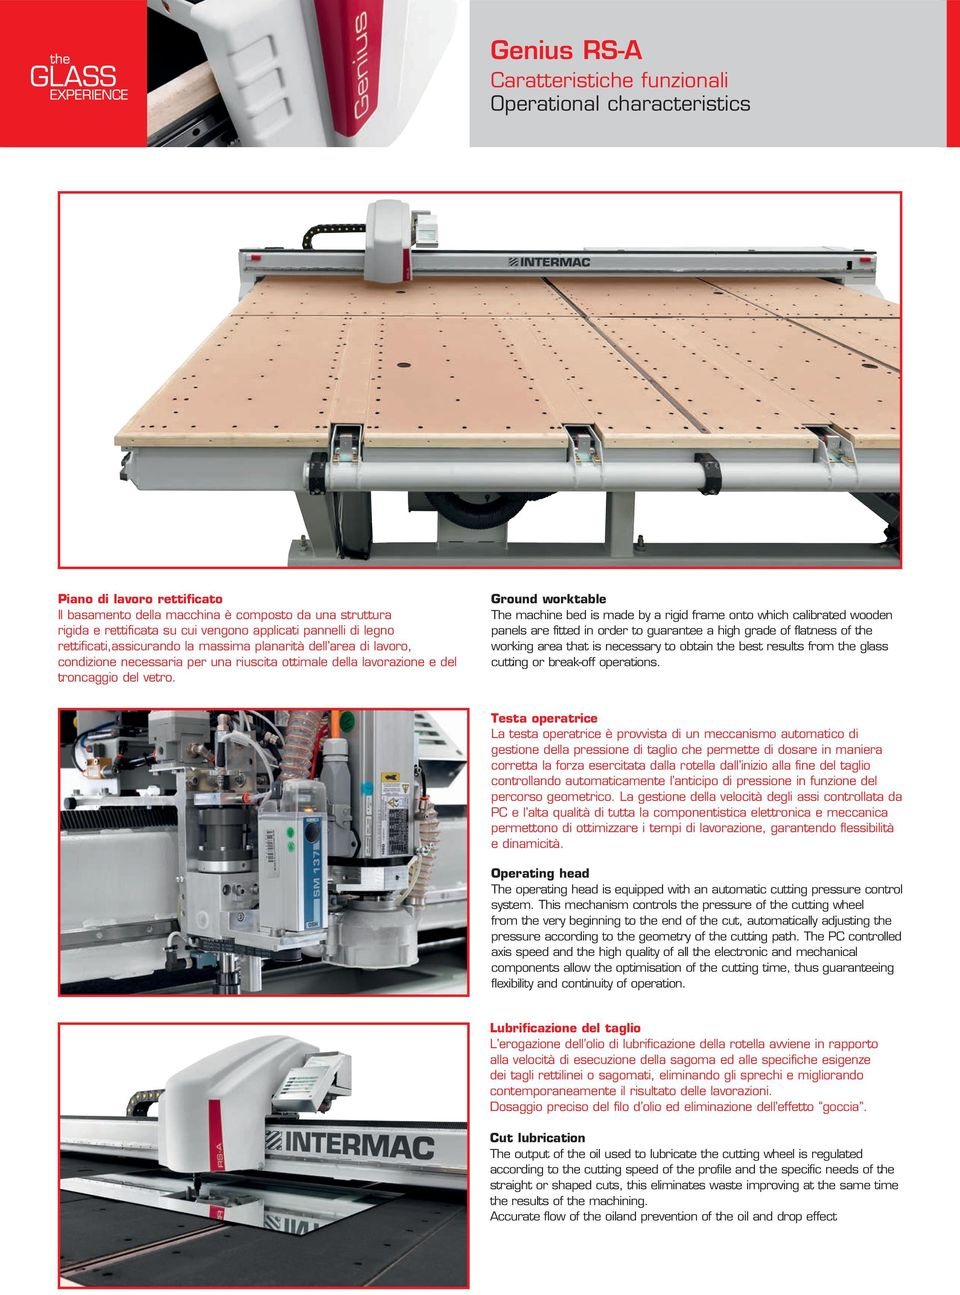 Ground worktable The machine bed is made by a rigid frame onto which calibrated wooden panels are fitted in order to guarantee a high grade of flatness of the working area that is necessary to obtain